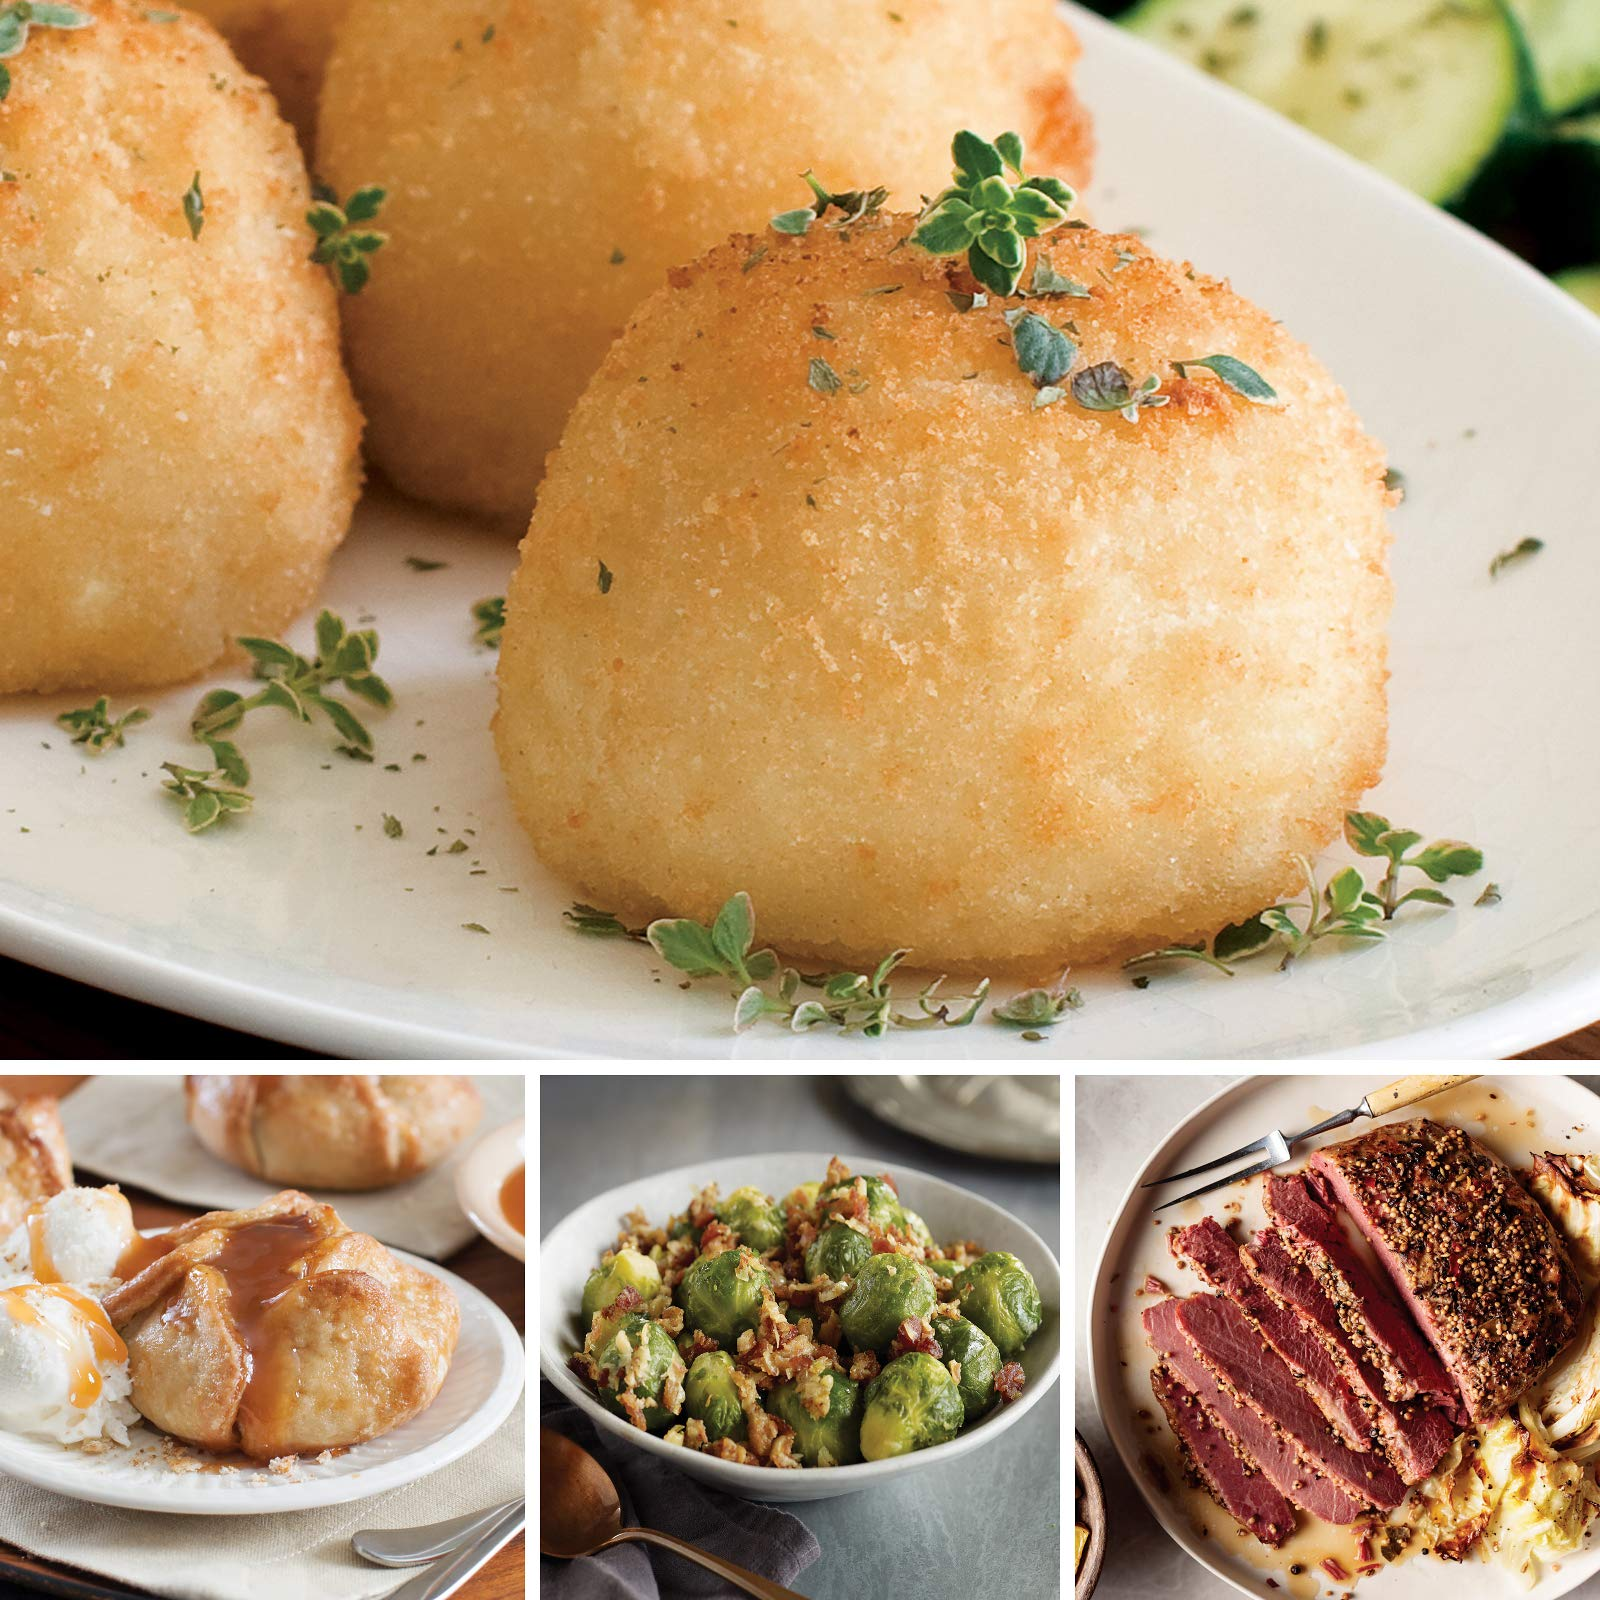 Omaha Steaks All-Included St. Patrick's Day Essentials (15-Piece with Rustic Corned Beef Roast, Brussels Sprouts with Shallots and Bacon, Potatoes au Gratin, and Individual Caramel Apple Tartlets)